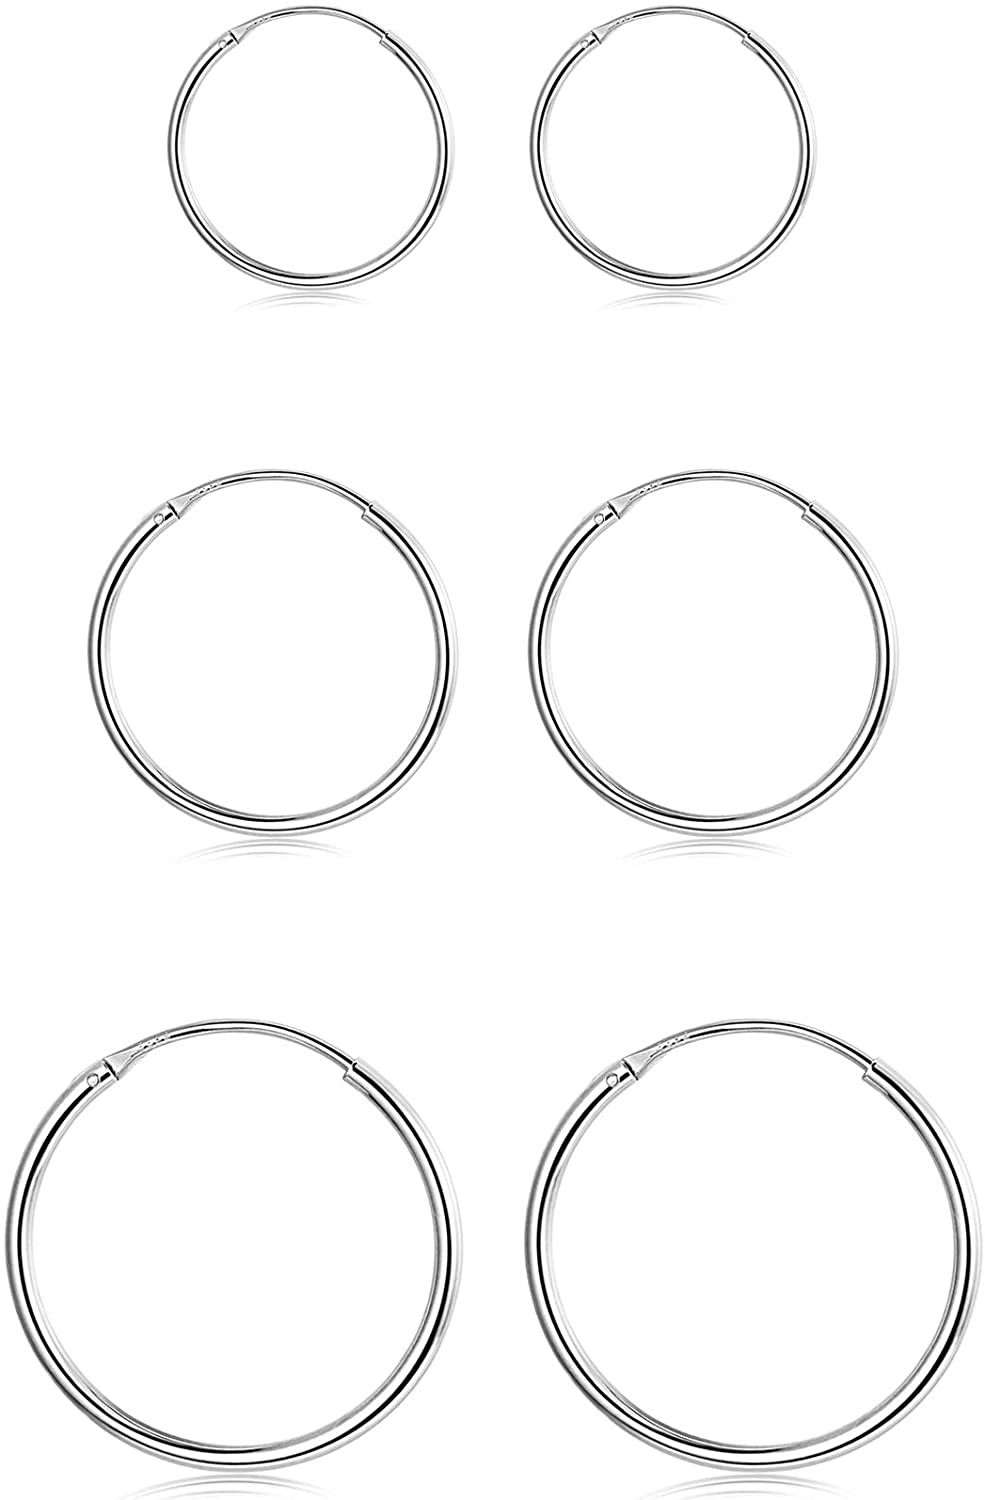 Sllaiss 3 Pairs 925 Sterling Silver Small Hoop Earrings For Women Men Round Endless Hoop Earrings Set Lightweight 10MM 15MM 20MM